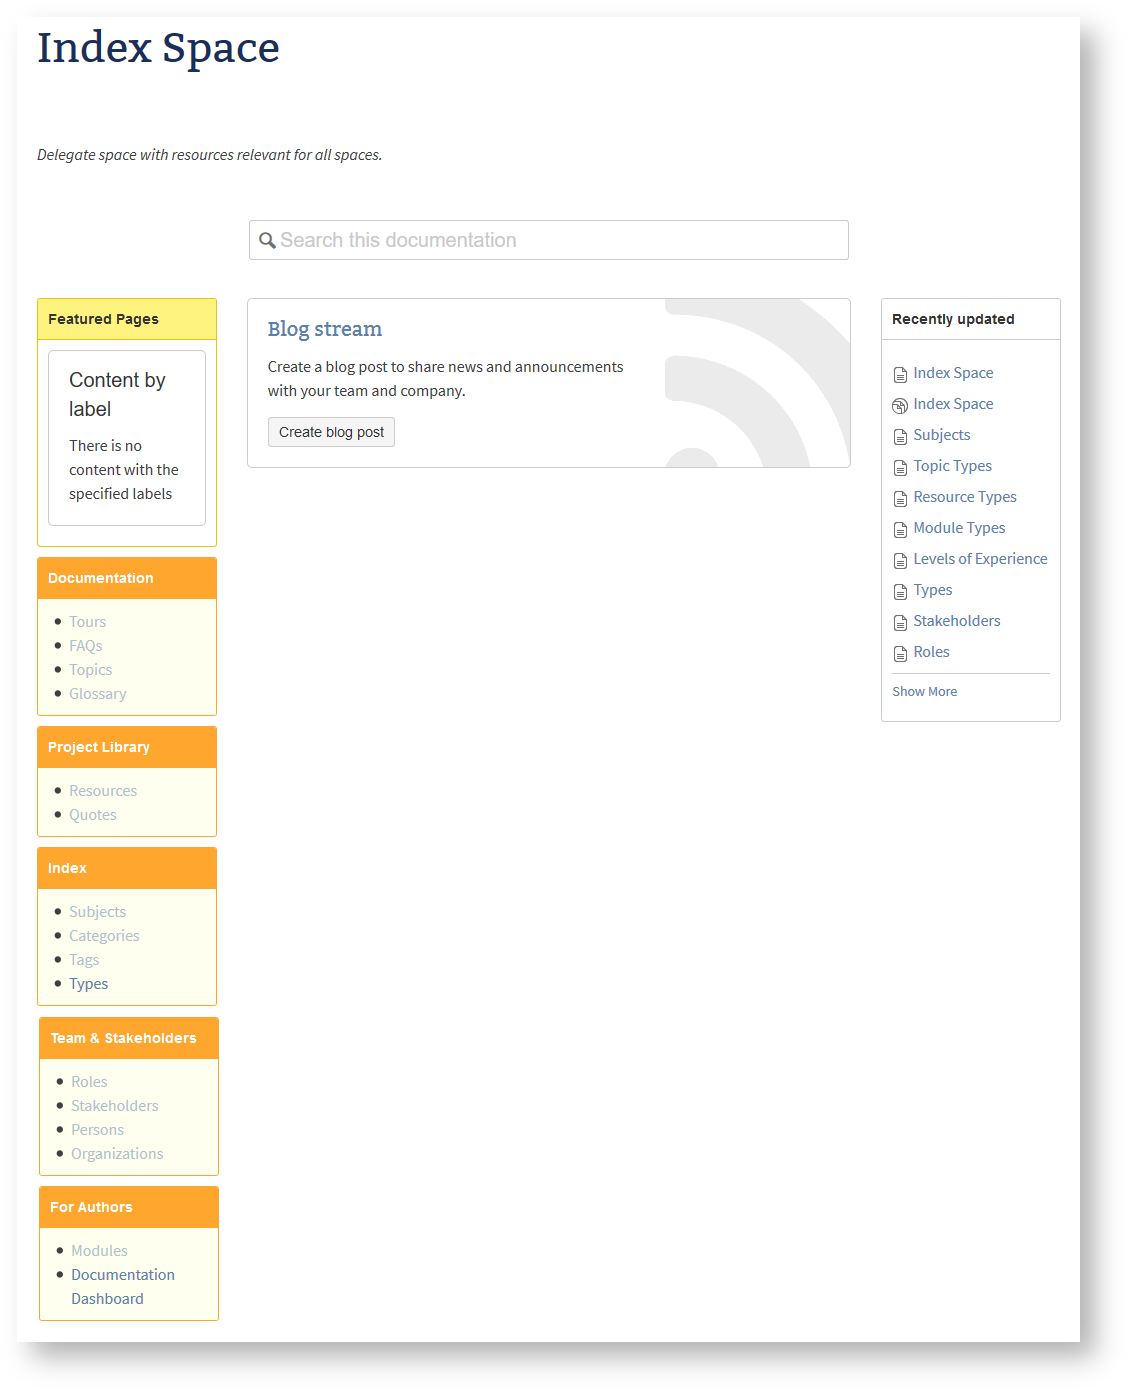 The new index space provides homepages to categorizing documents that are relevant to all your spaces.